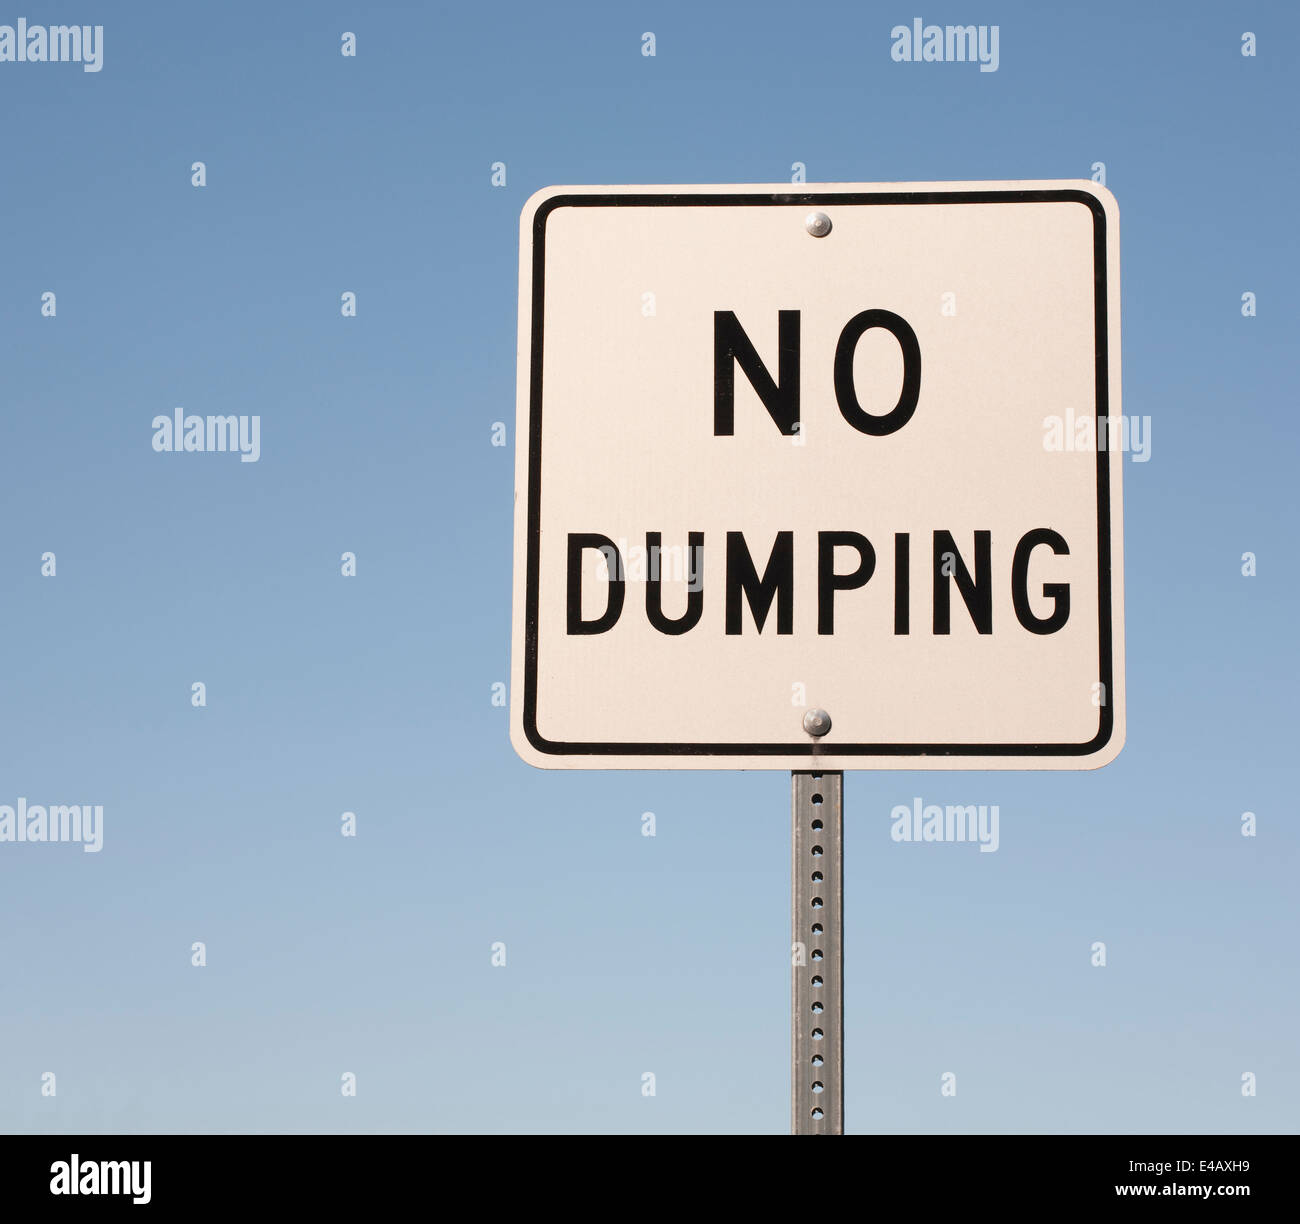 No dumping sign and blue sky. - Stock Image